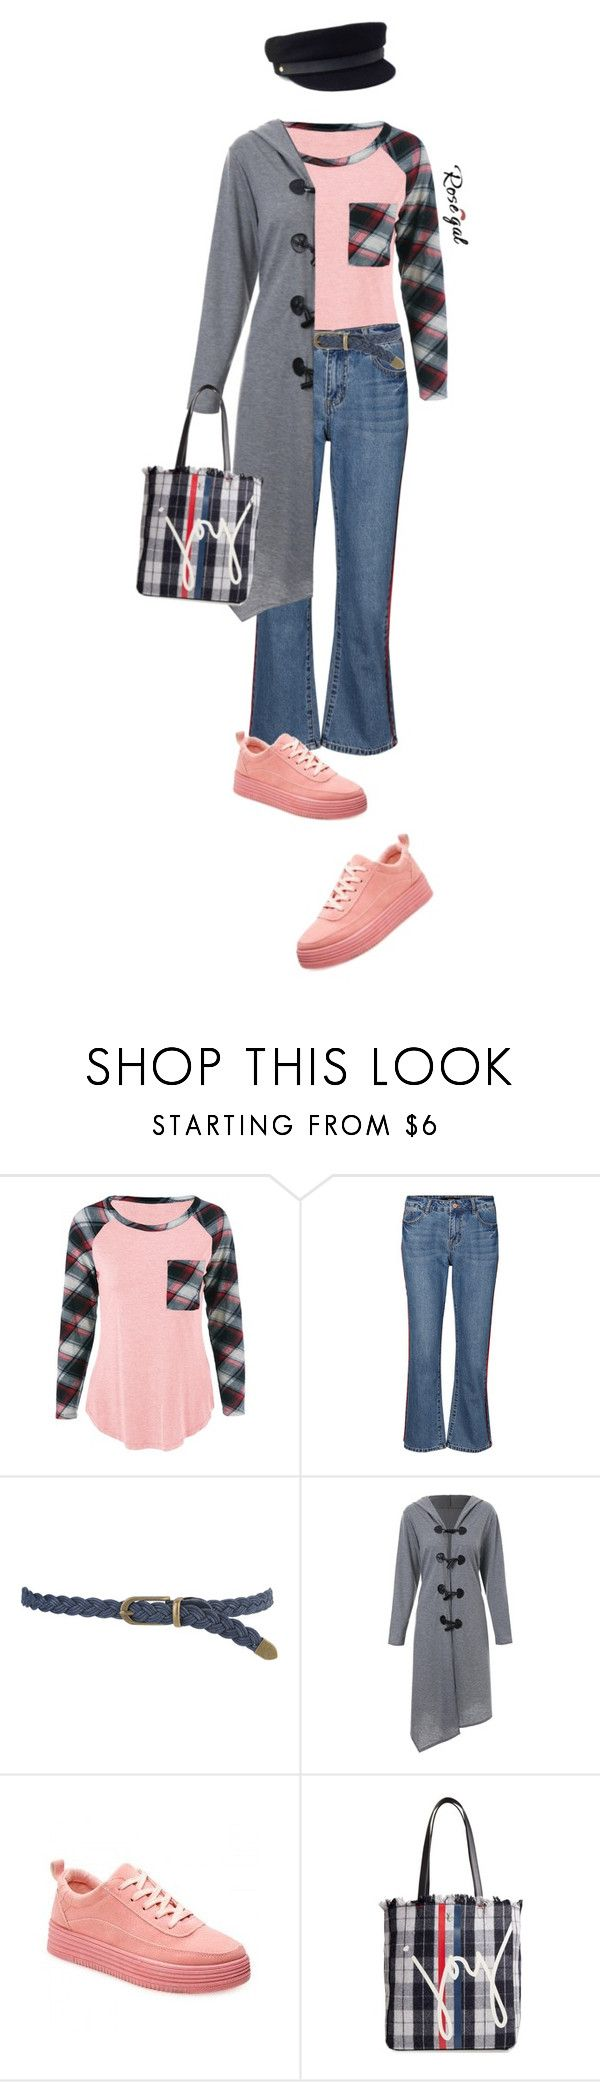 """""""Rosegal Plaid Pinted Items"""" by lence-59 ❤ liked on Polyvore featuring Vero Moda, Forever 21, ED Ellen DeGeneres and Janessa Leone"""